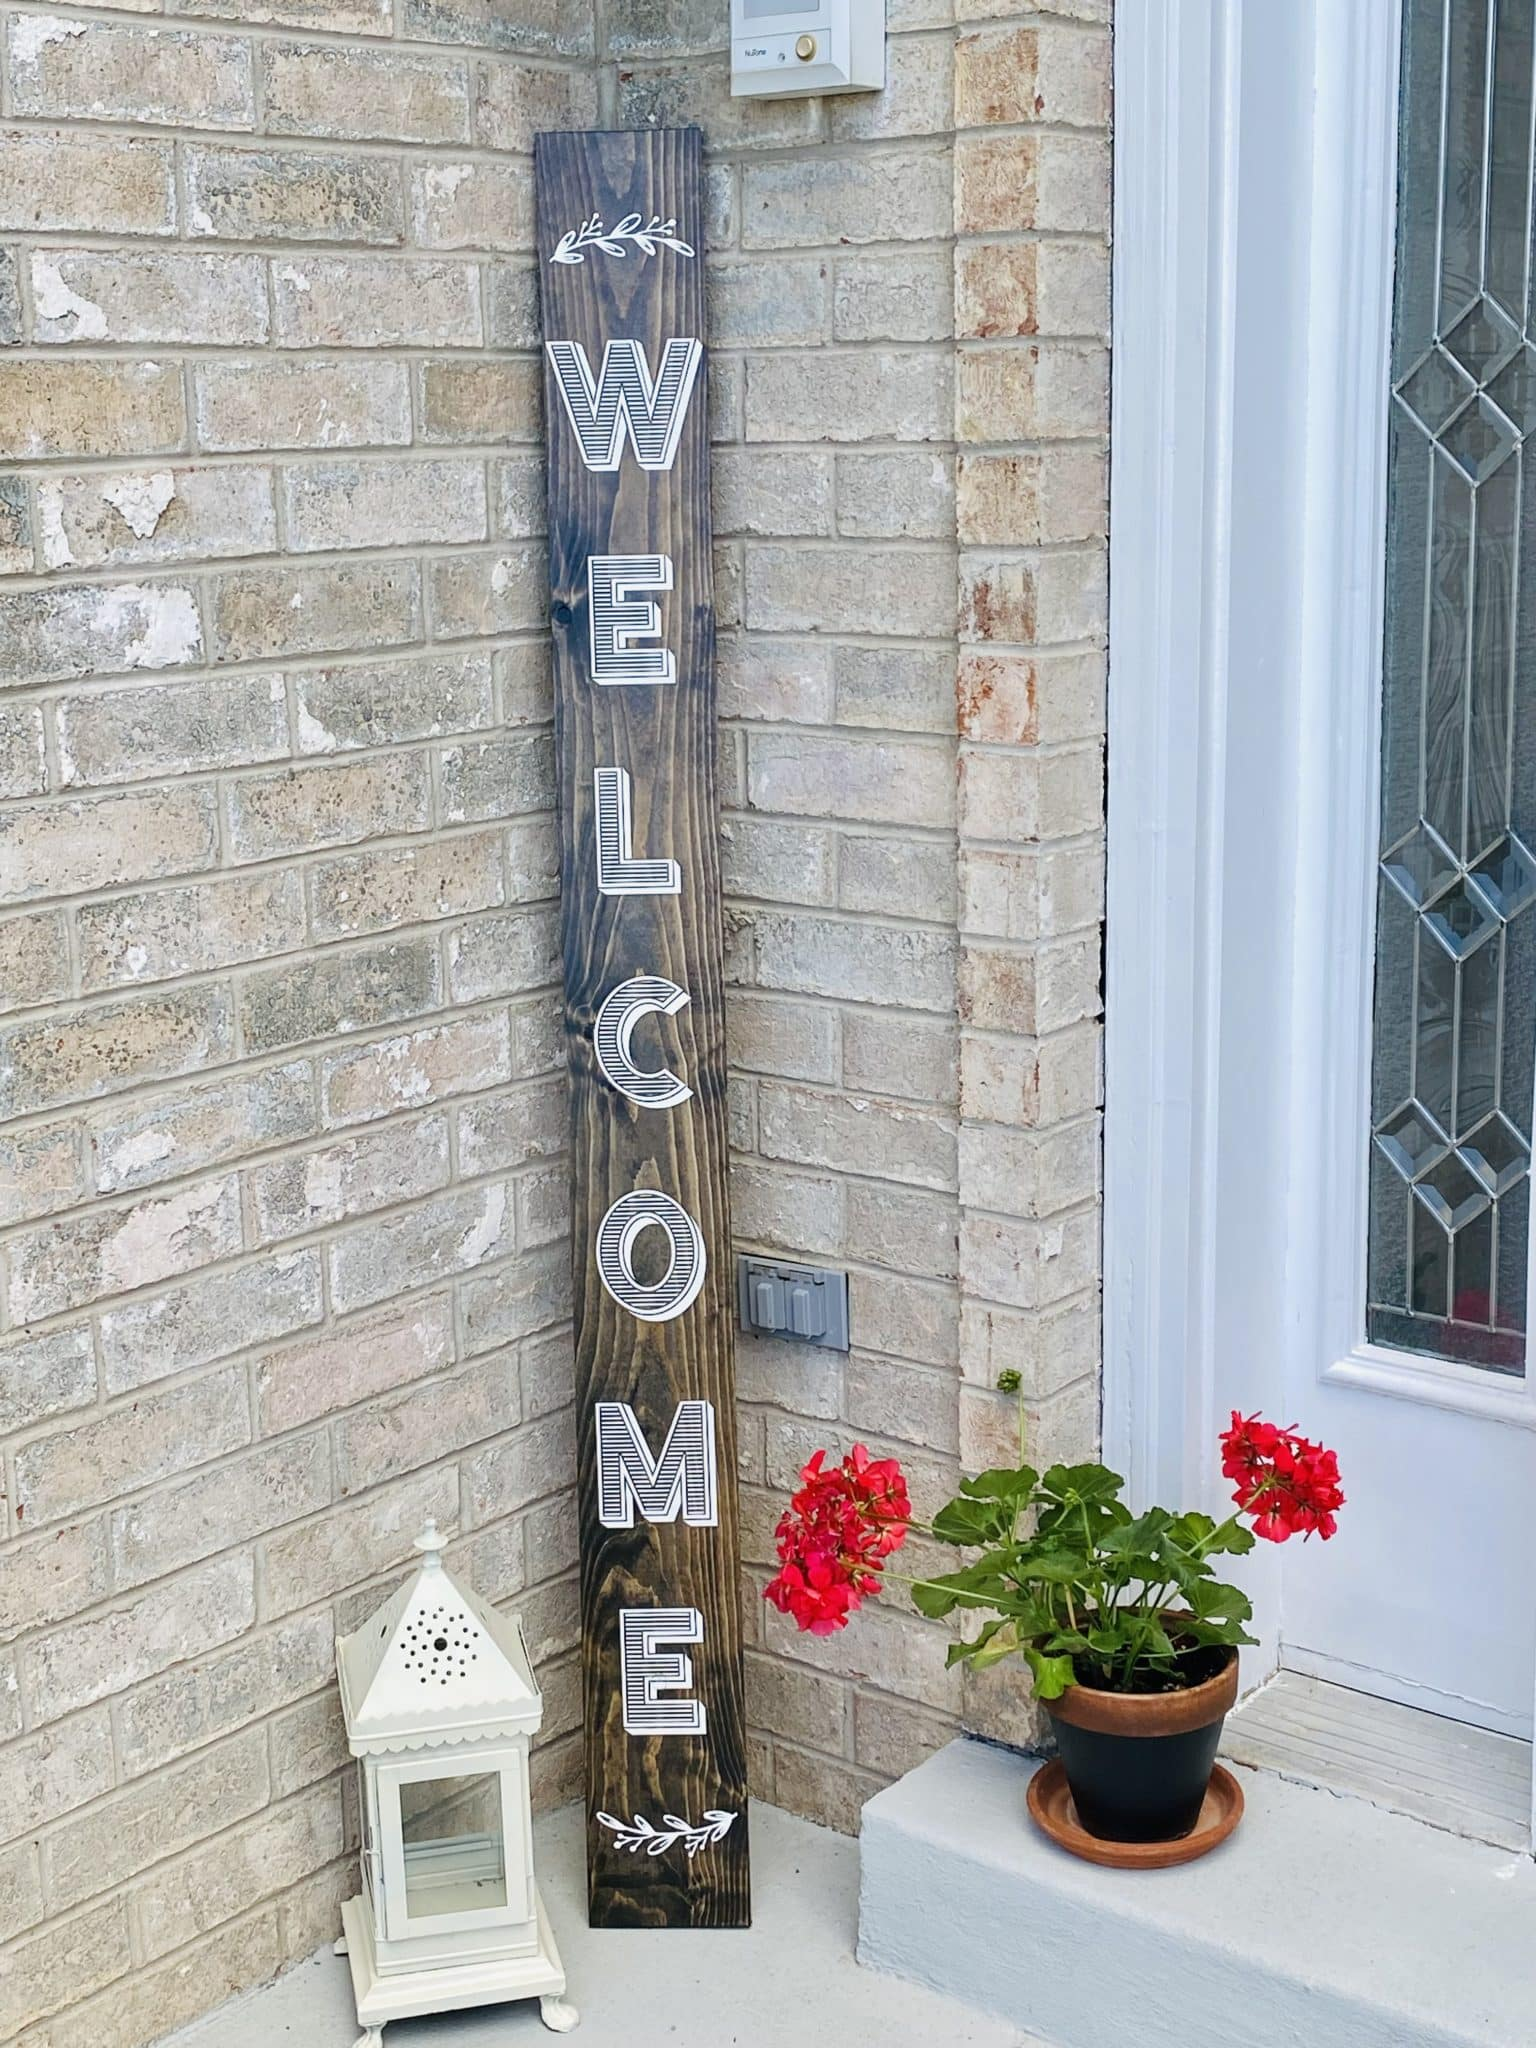 contact paper stenciled porch sign